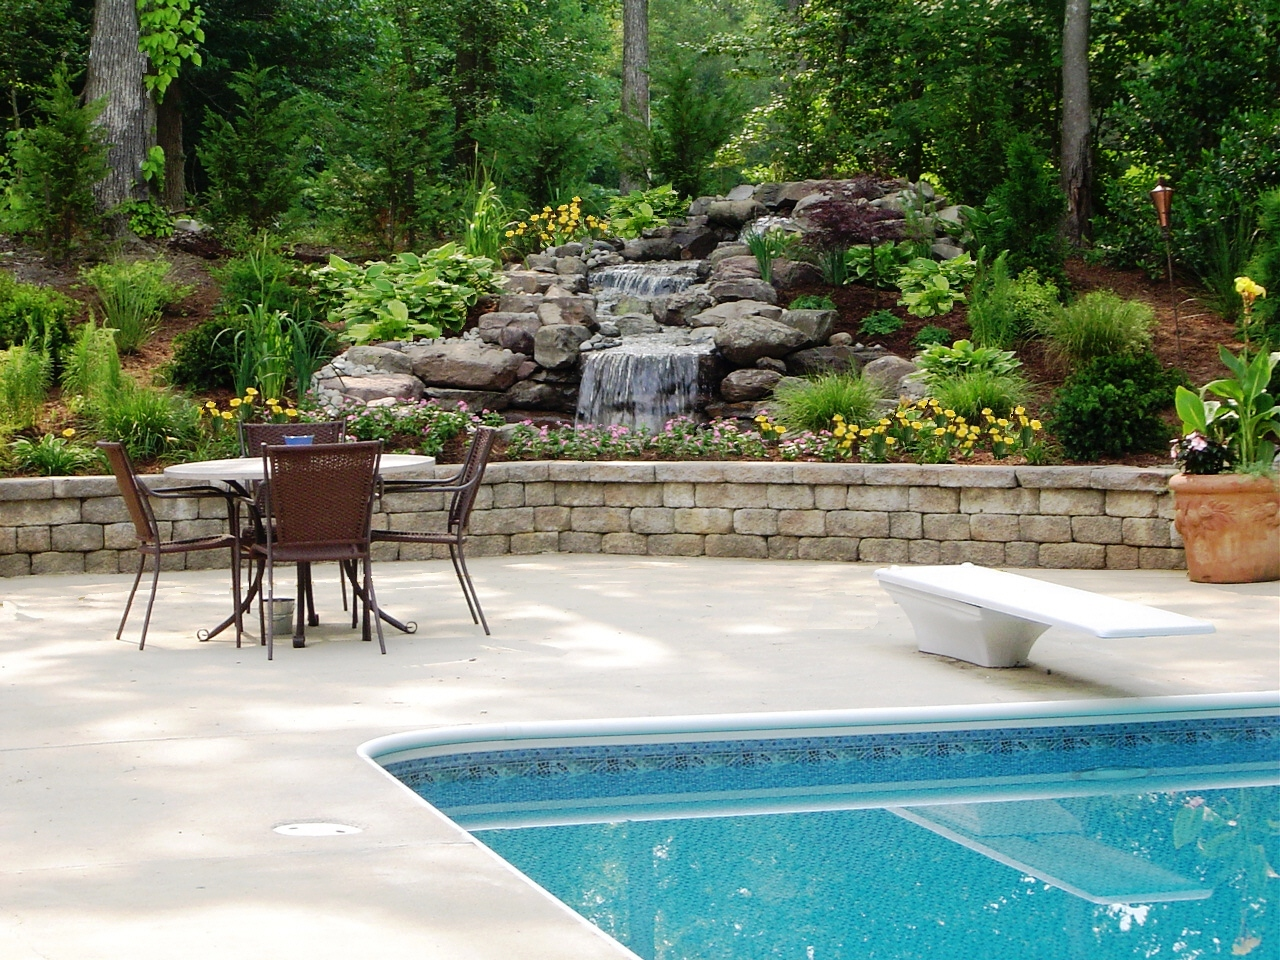 Pool Deck Waterfall Wall Plants